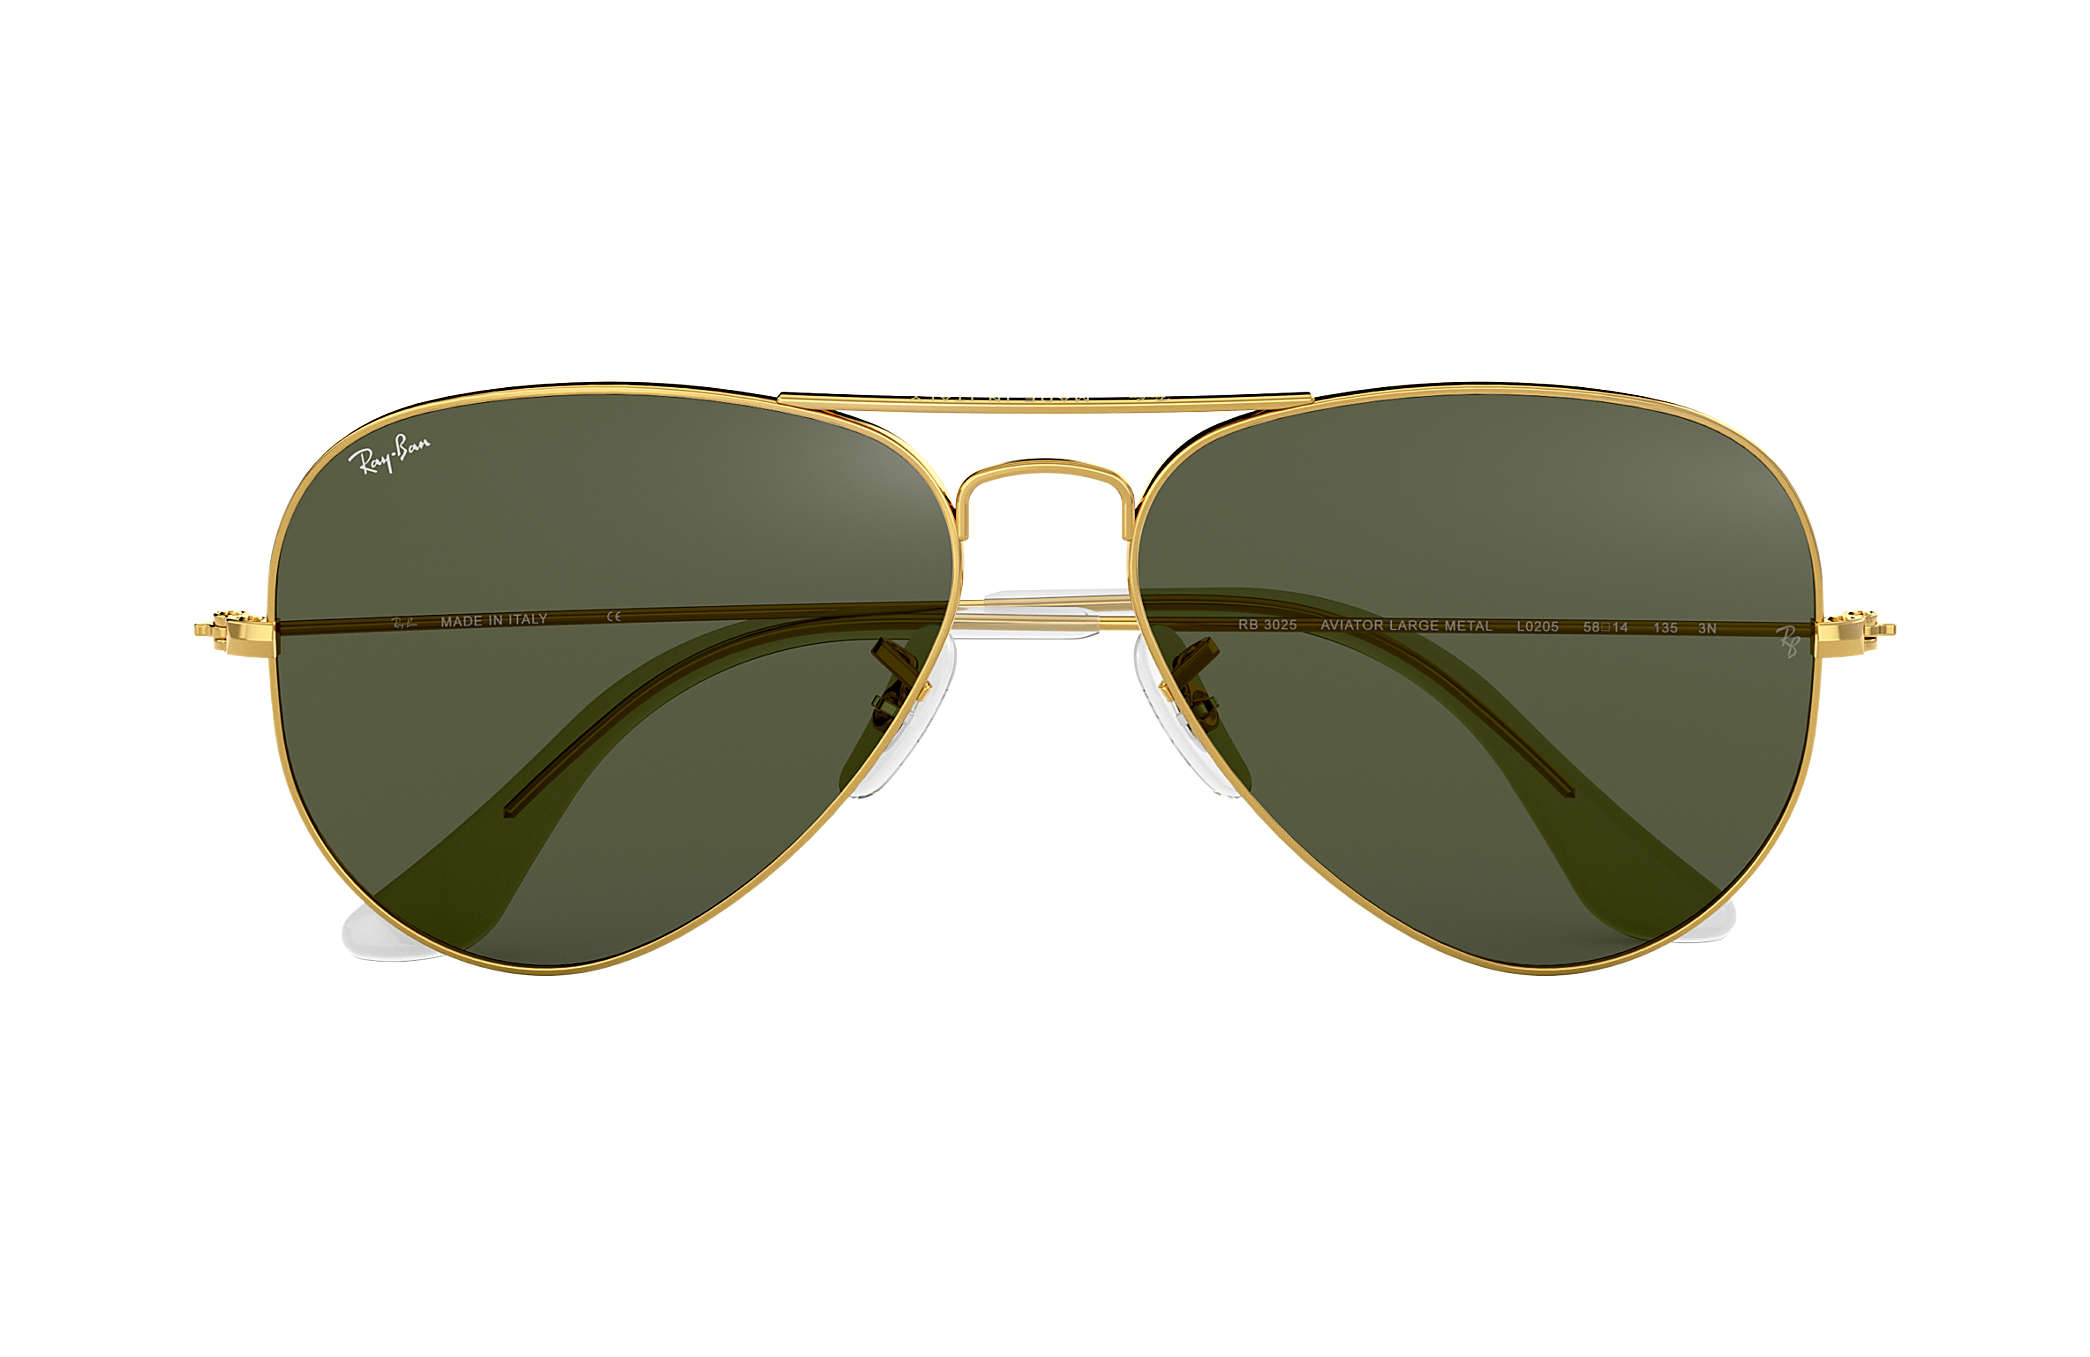 81a4fb8a65 Ray-Ban Aviator Classic RB3025 Gold - Metal - Green Lenses ...